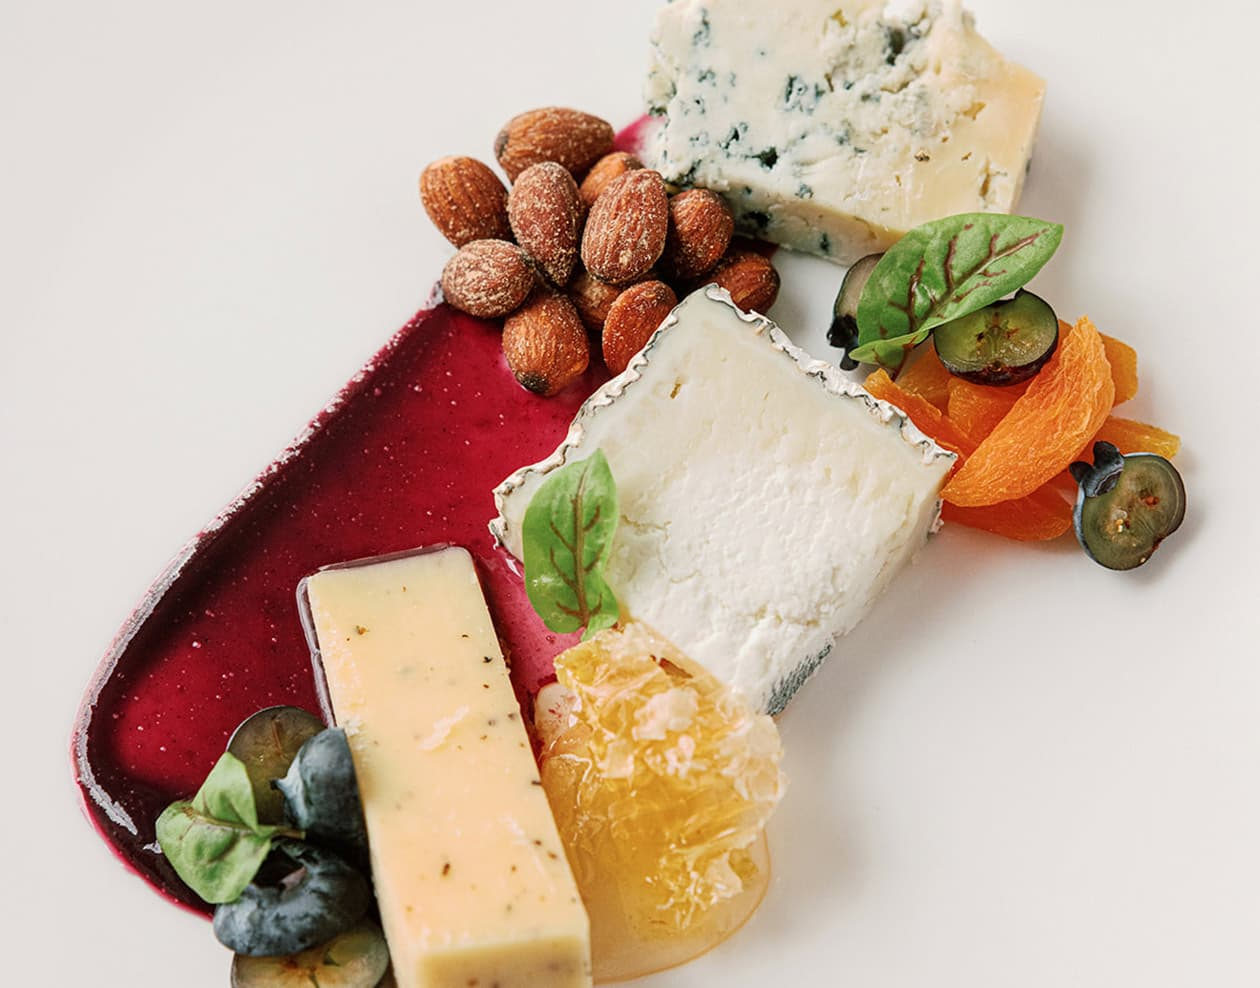 plate of cheeses and fruits